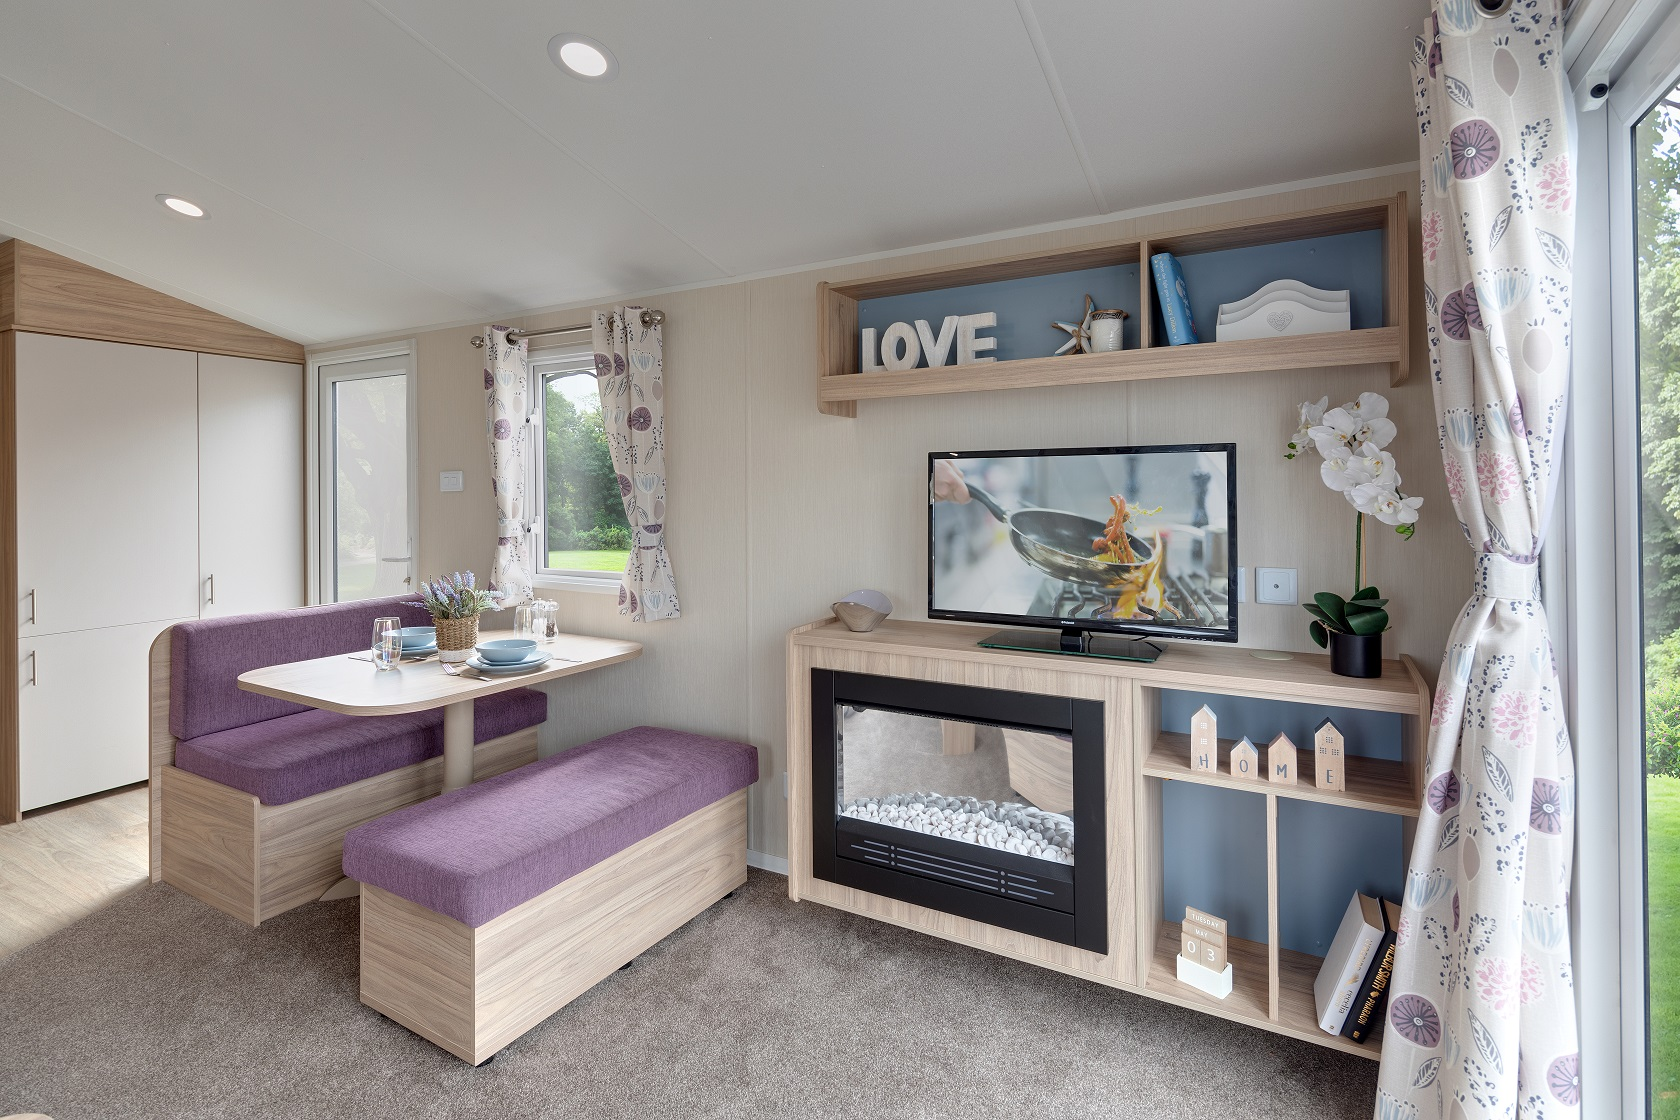 Willerby Linwood: New Static Caravans and Holiday Homes for Sale, Langley Moor, Durham Large Image 2